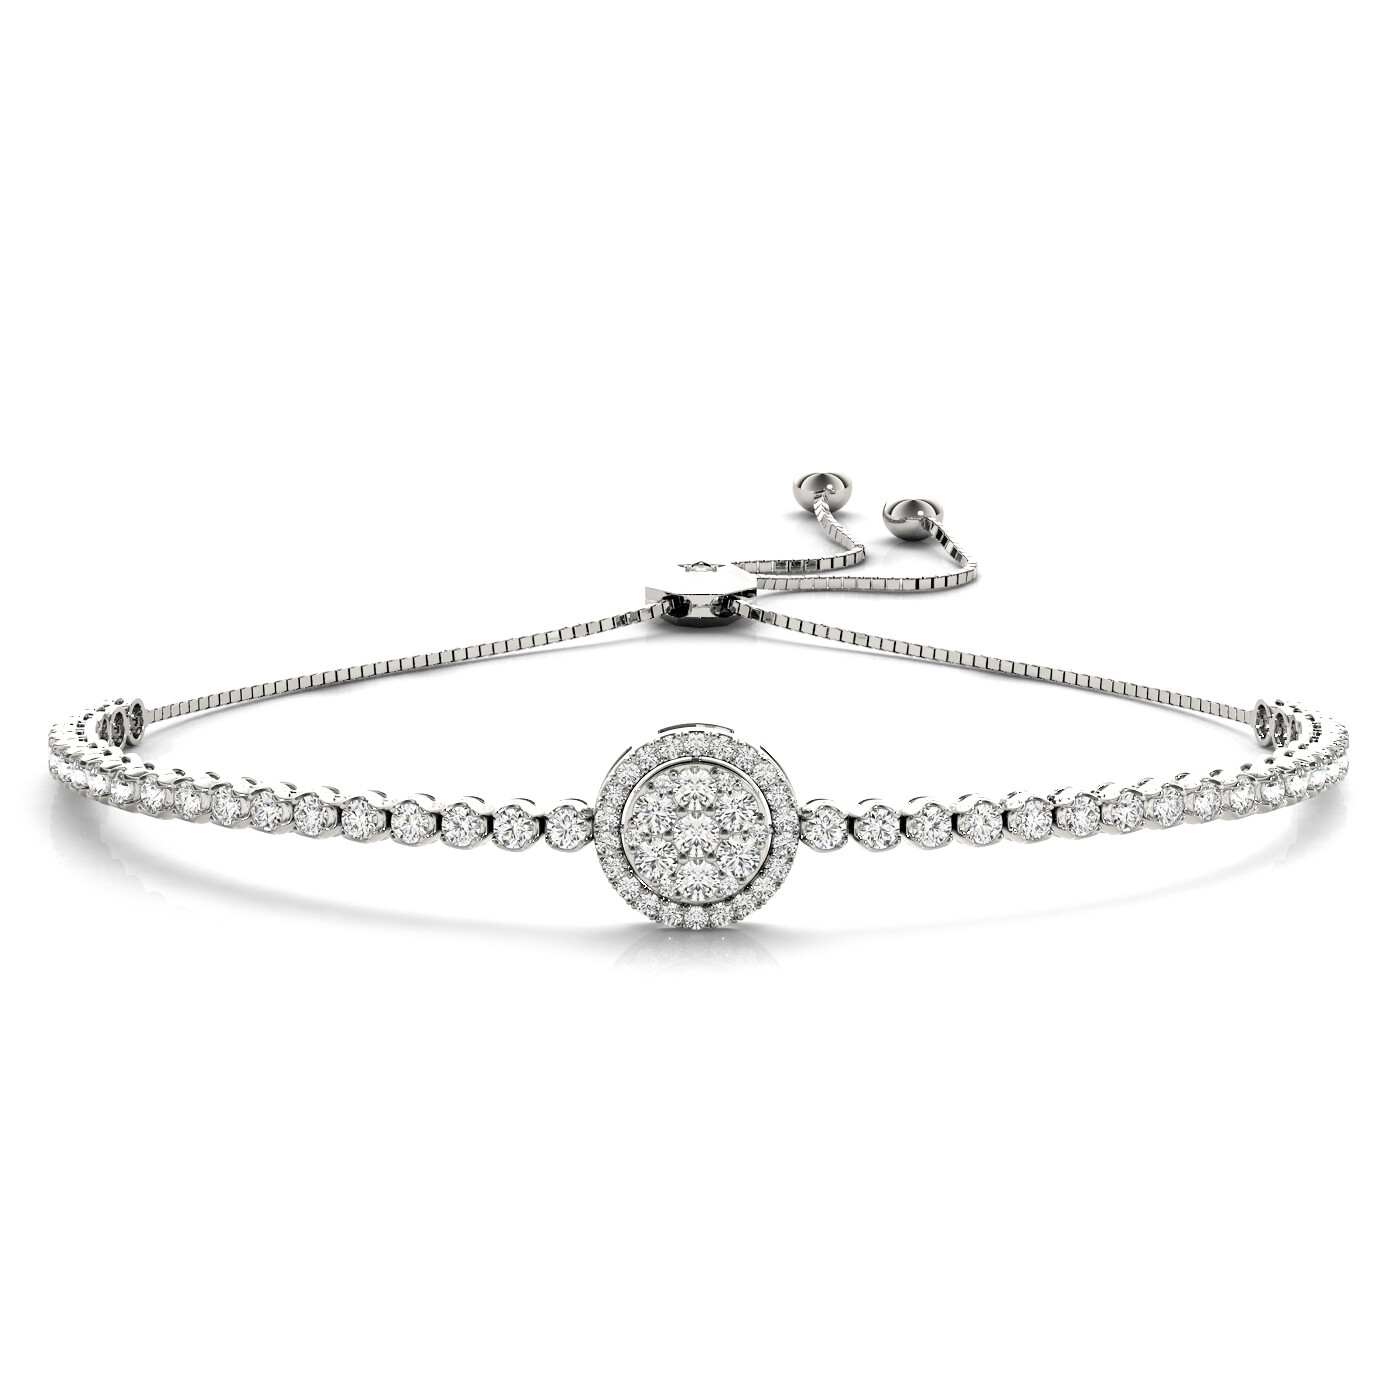 14K Diamond Cluster Tennis Adjustable Bracelet,Diamond Bolo Bracelet